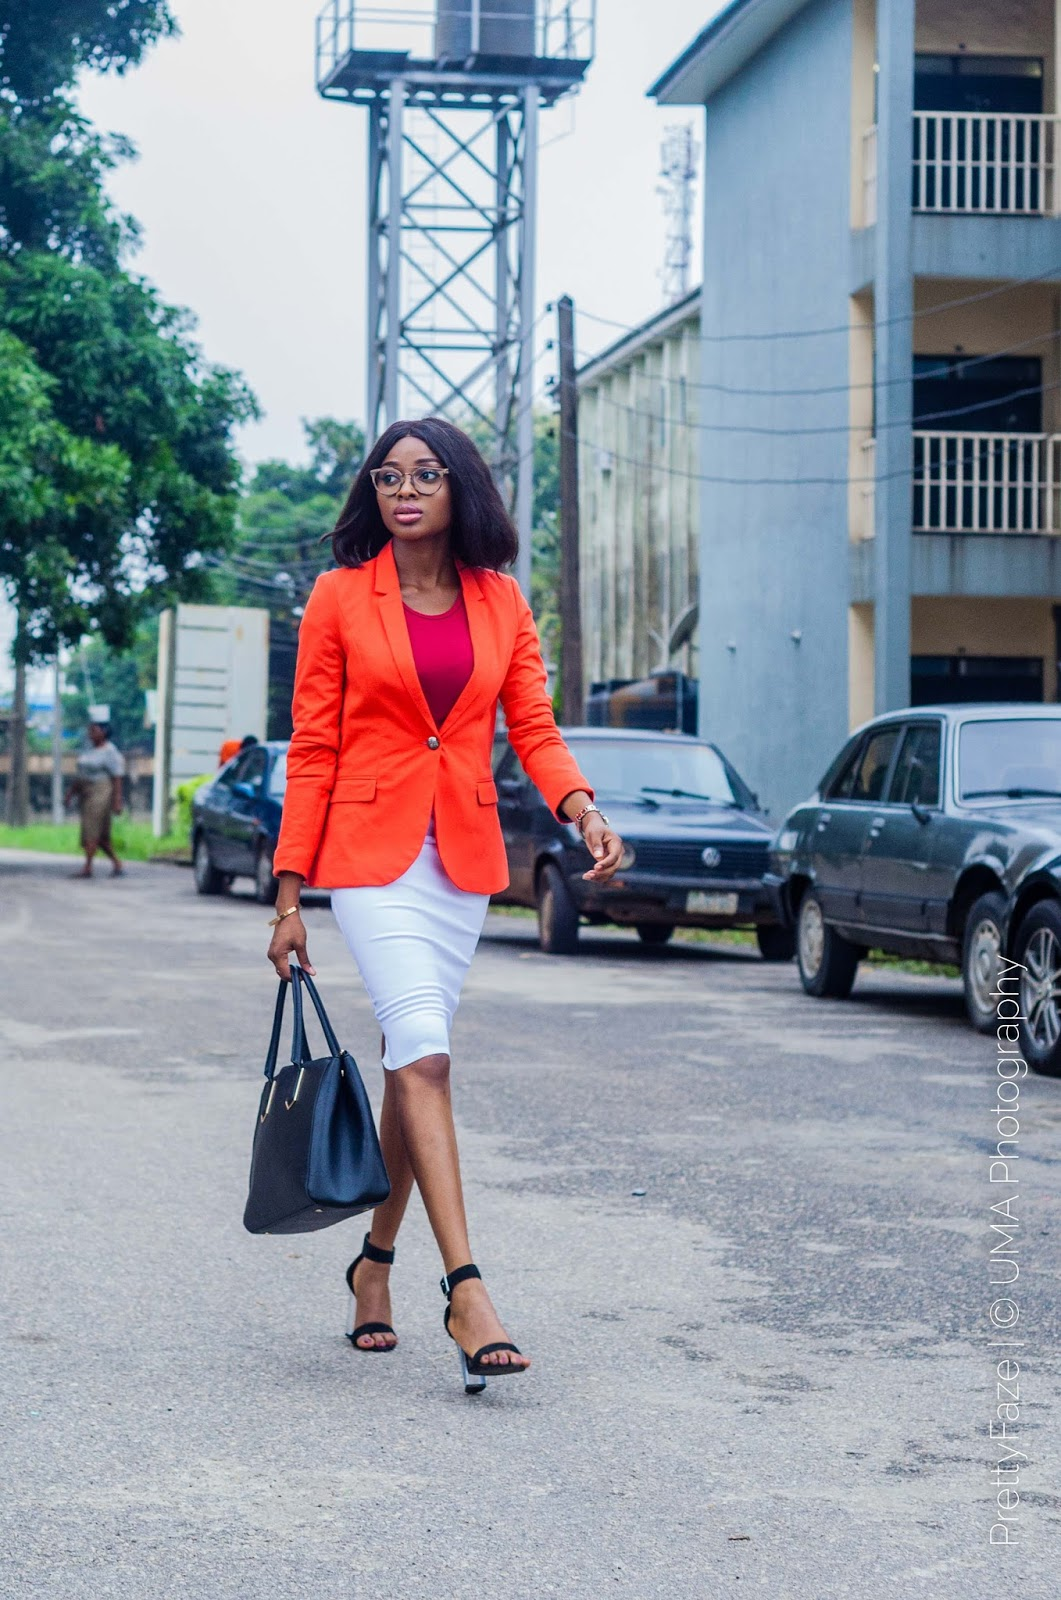 Work Chic Outfits, Outfit ideas for the office, blazer outfits, blazer looks, orange blazer, bright color for the office